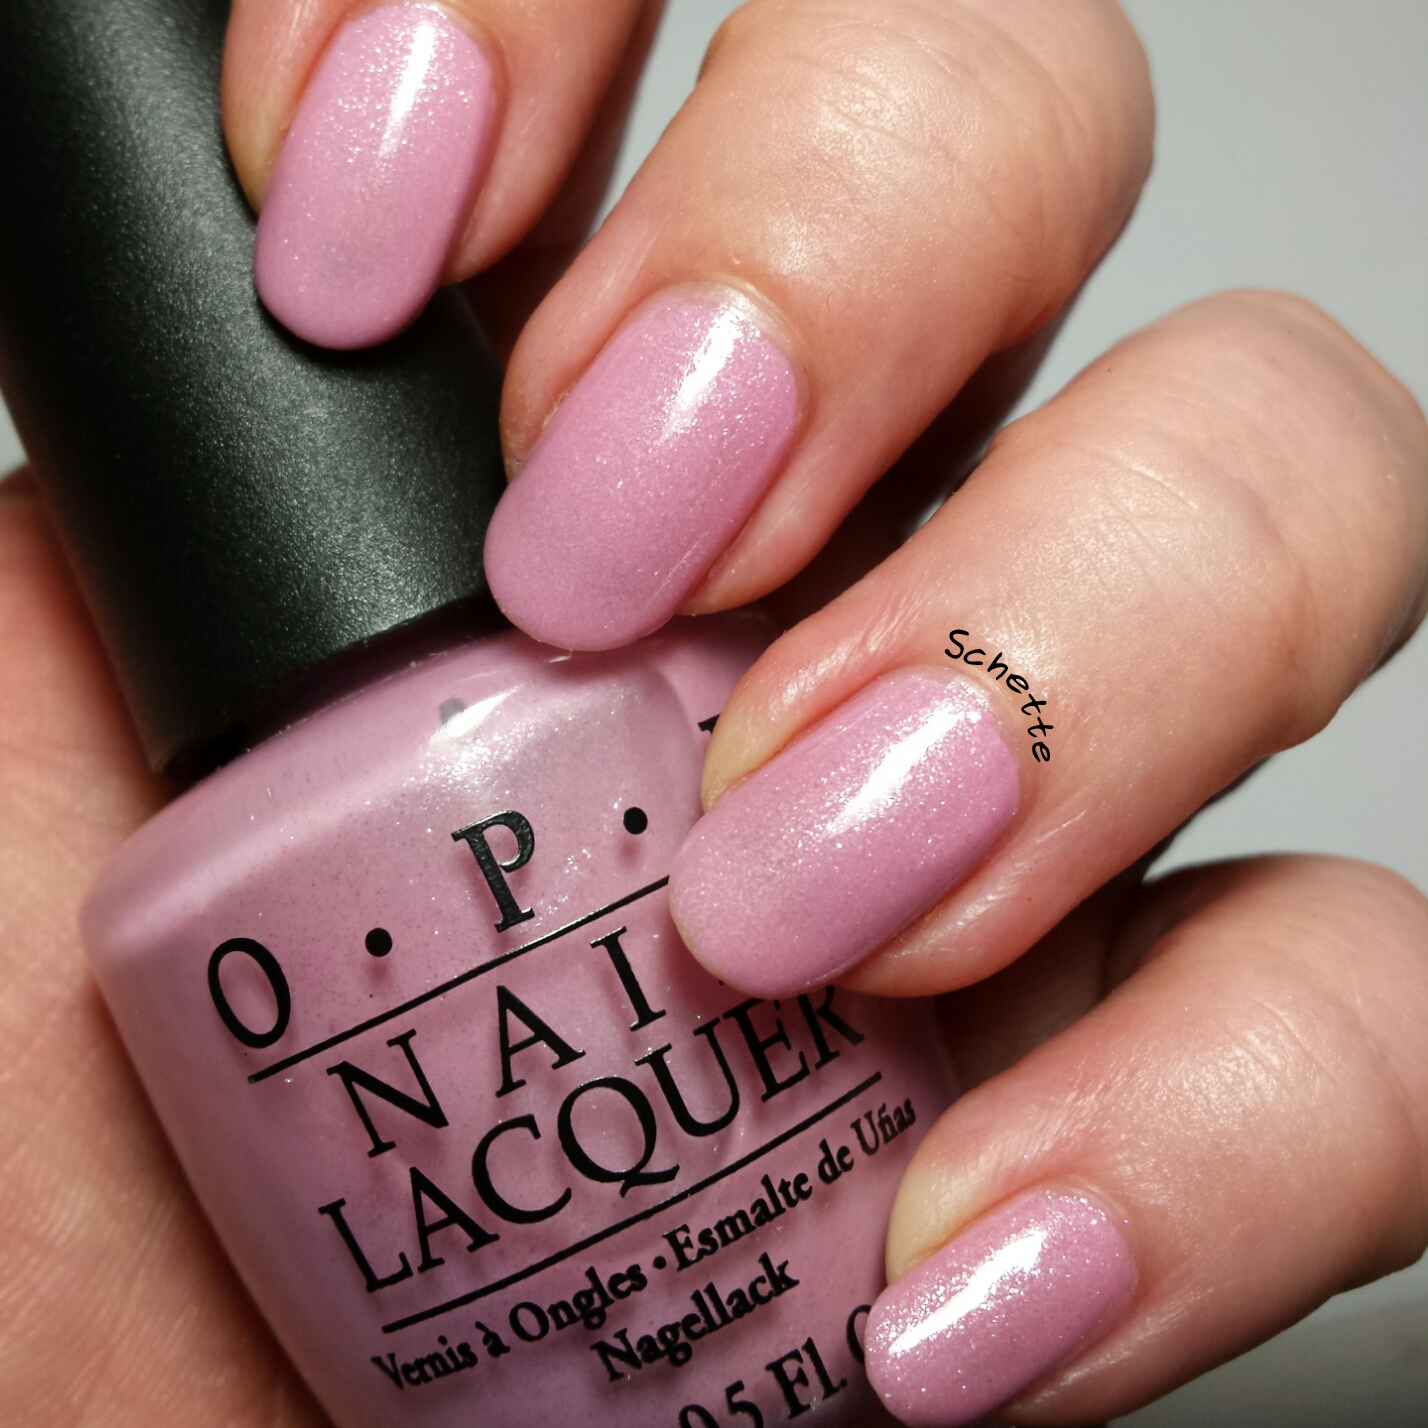 OPI : Just Spotted the Lizzard, My Address is Hollywood, Warm and Fozzie, Pedal faster Suzi